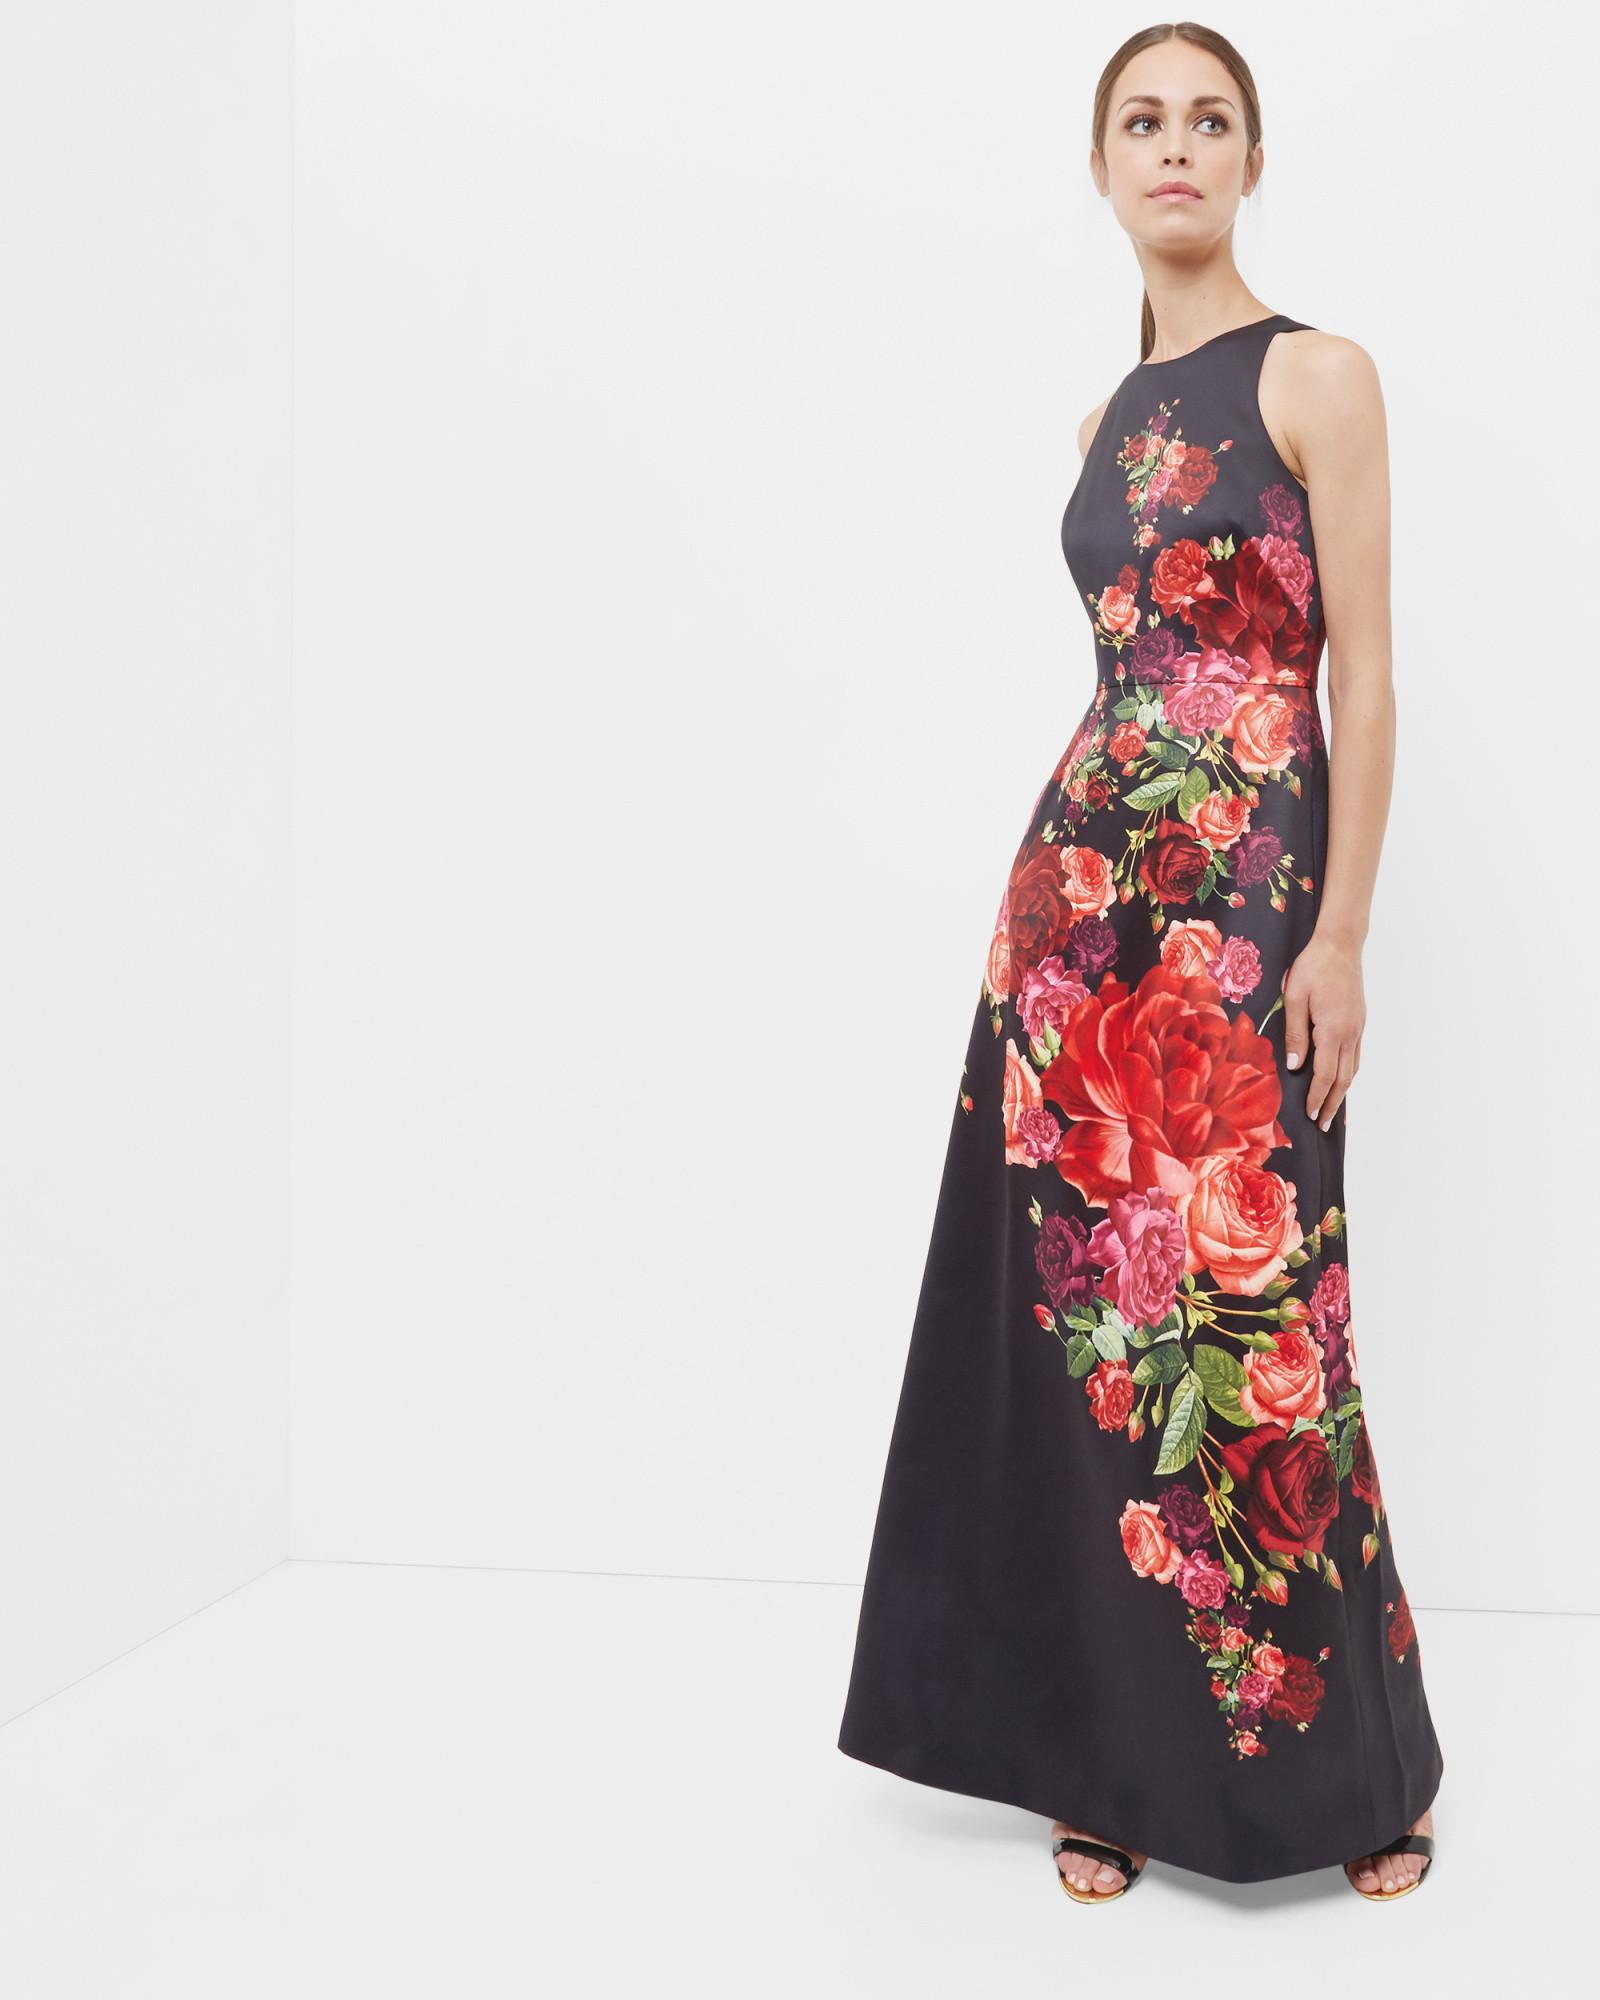 Lyst - Ted baker Marico Juxtapose Rose Maxi Dress in Black